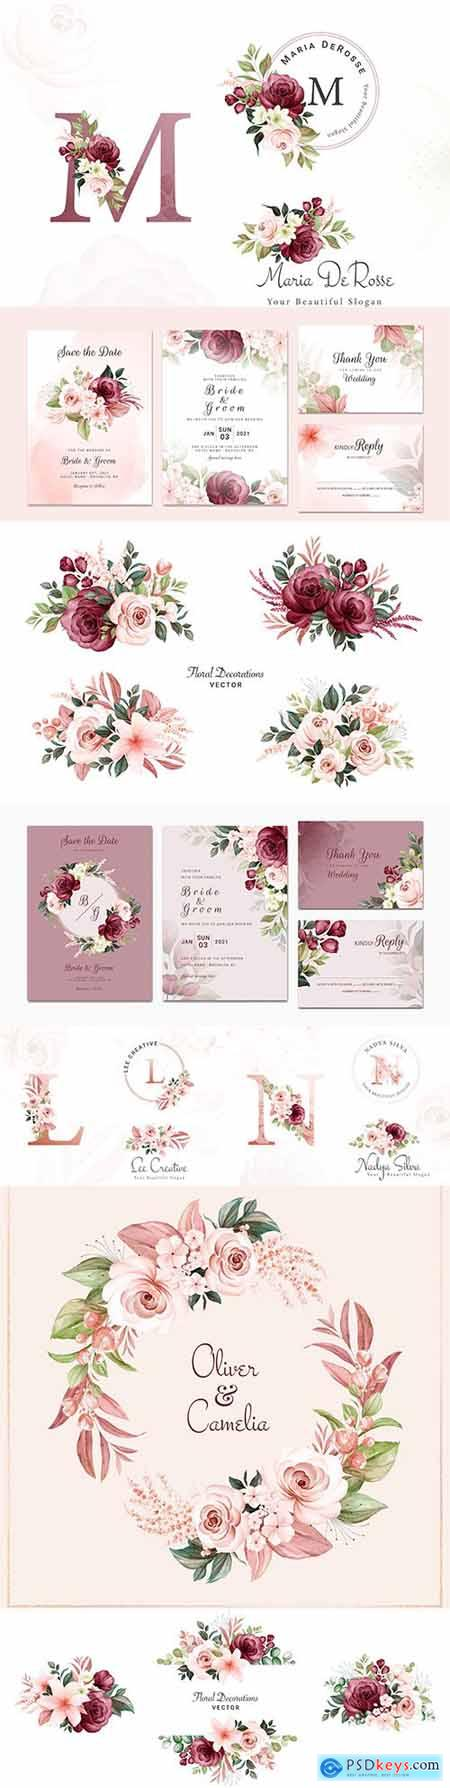 Wedding invitation template watercolor flower and green leaves 7